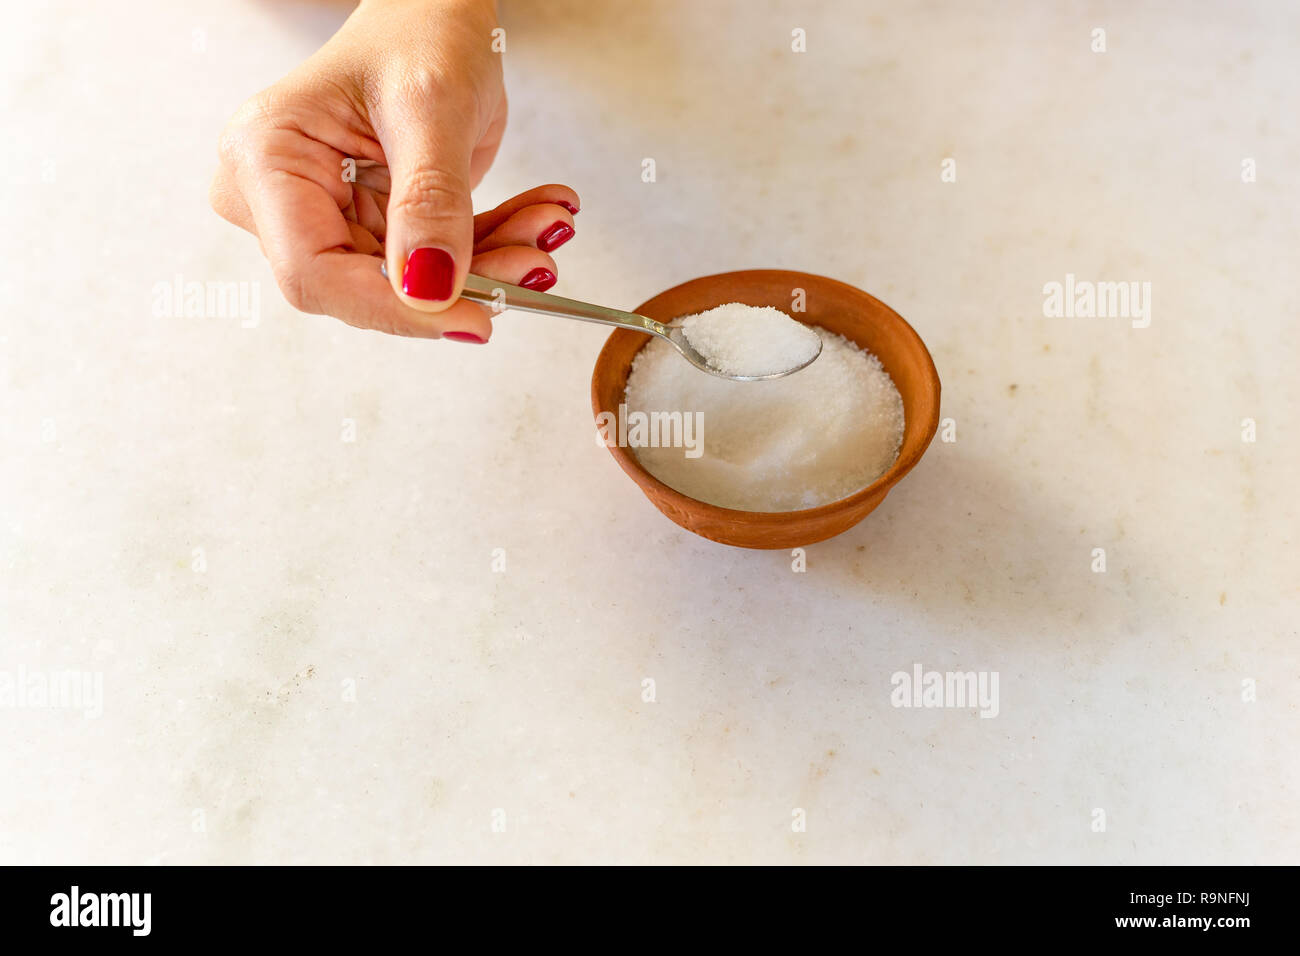 Woman hand holding spoon full of sugar health care concept. - Stock Image